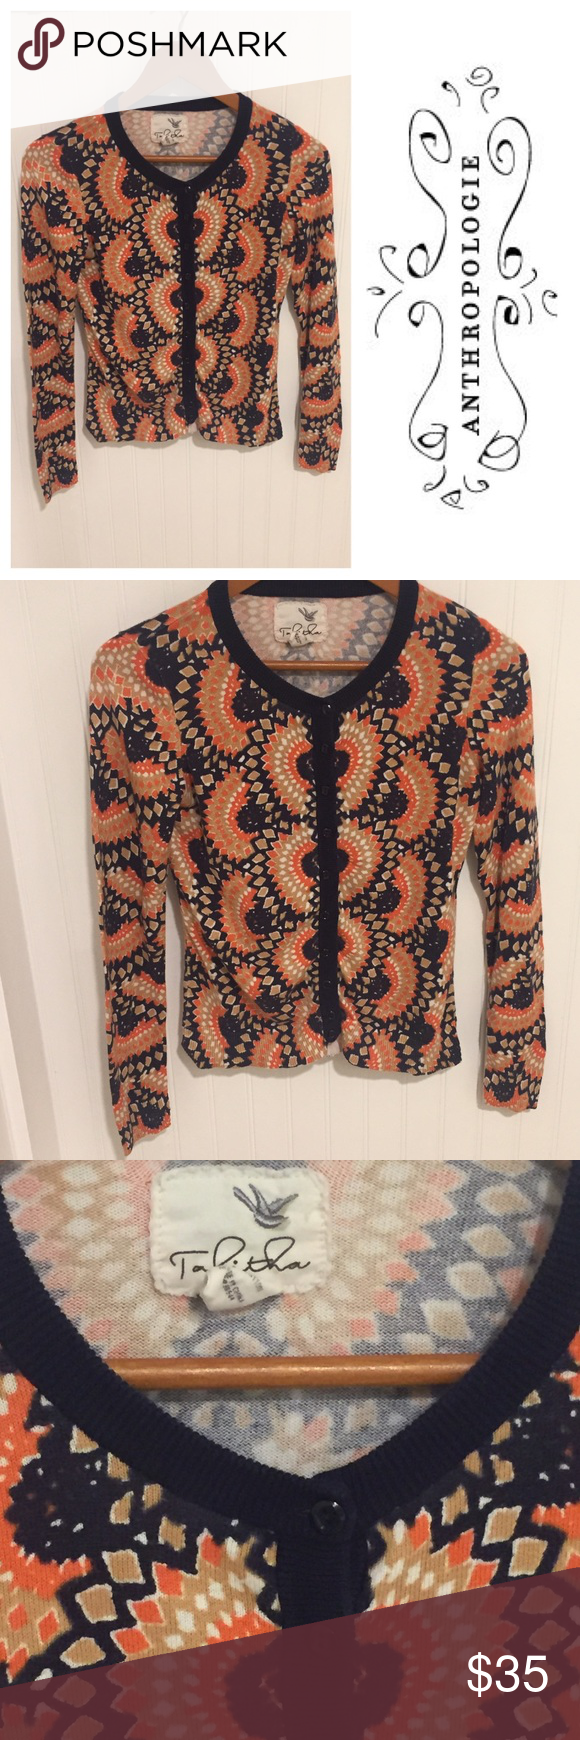 """Anthropologie Tabitha printed cardigan sweater S Size Small.  (36"""" chest, 22"""" length). Worn a few times. 100% cotton. Navy and orange print. In excellent condition. See my closet for more great designer items. 15% off a bundle of 3 or more listings. Sorry, no trades! Anthropologie Sweaters Cardigans"""